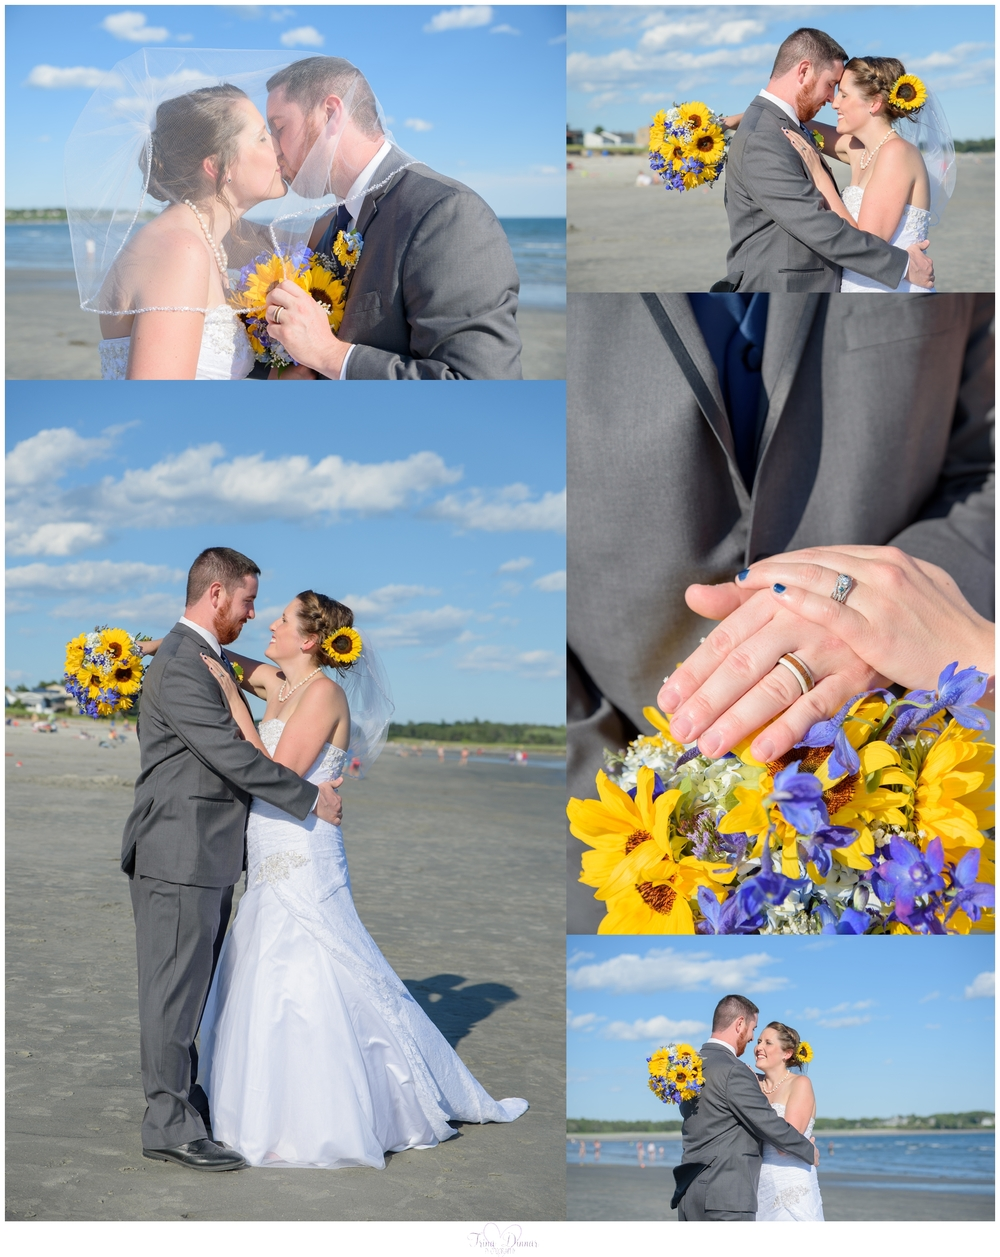 Bride and Groom Maine wedding photography at Pine Point Beach.